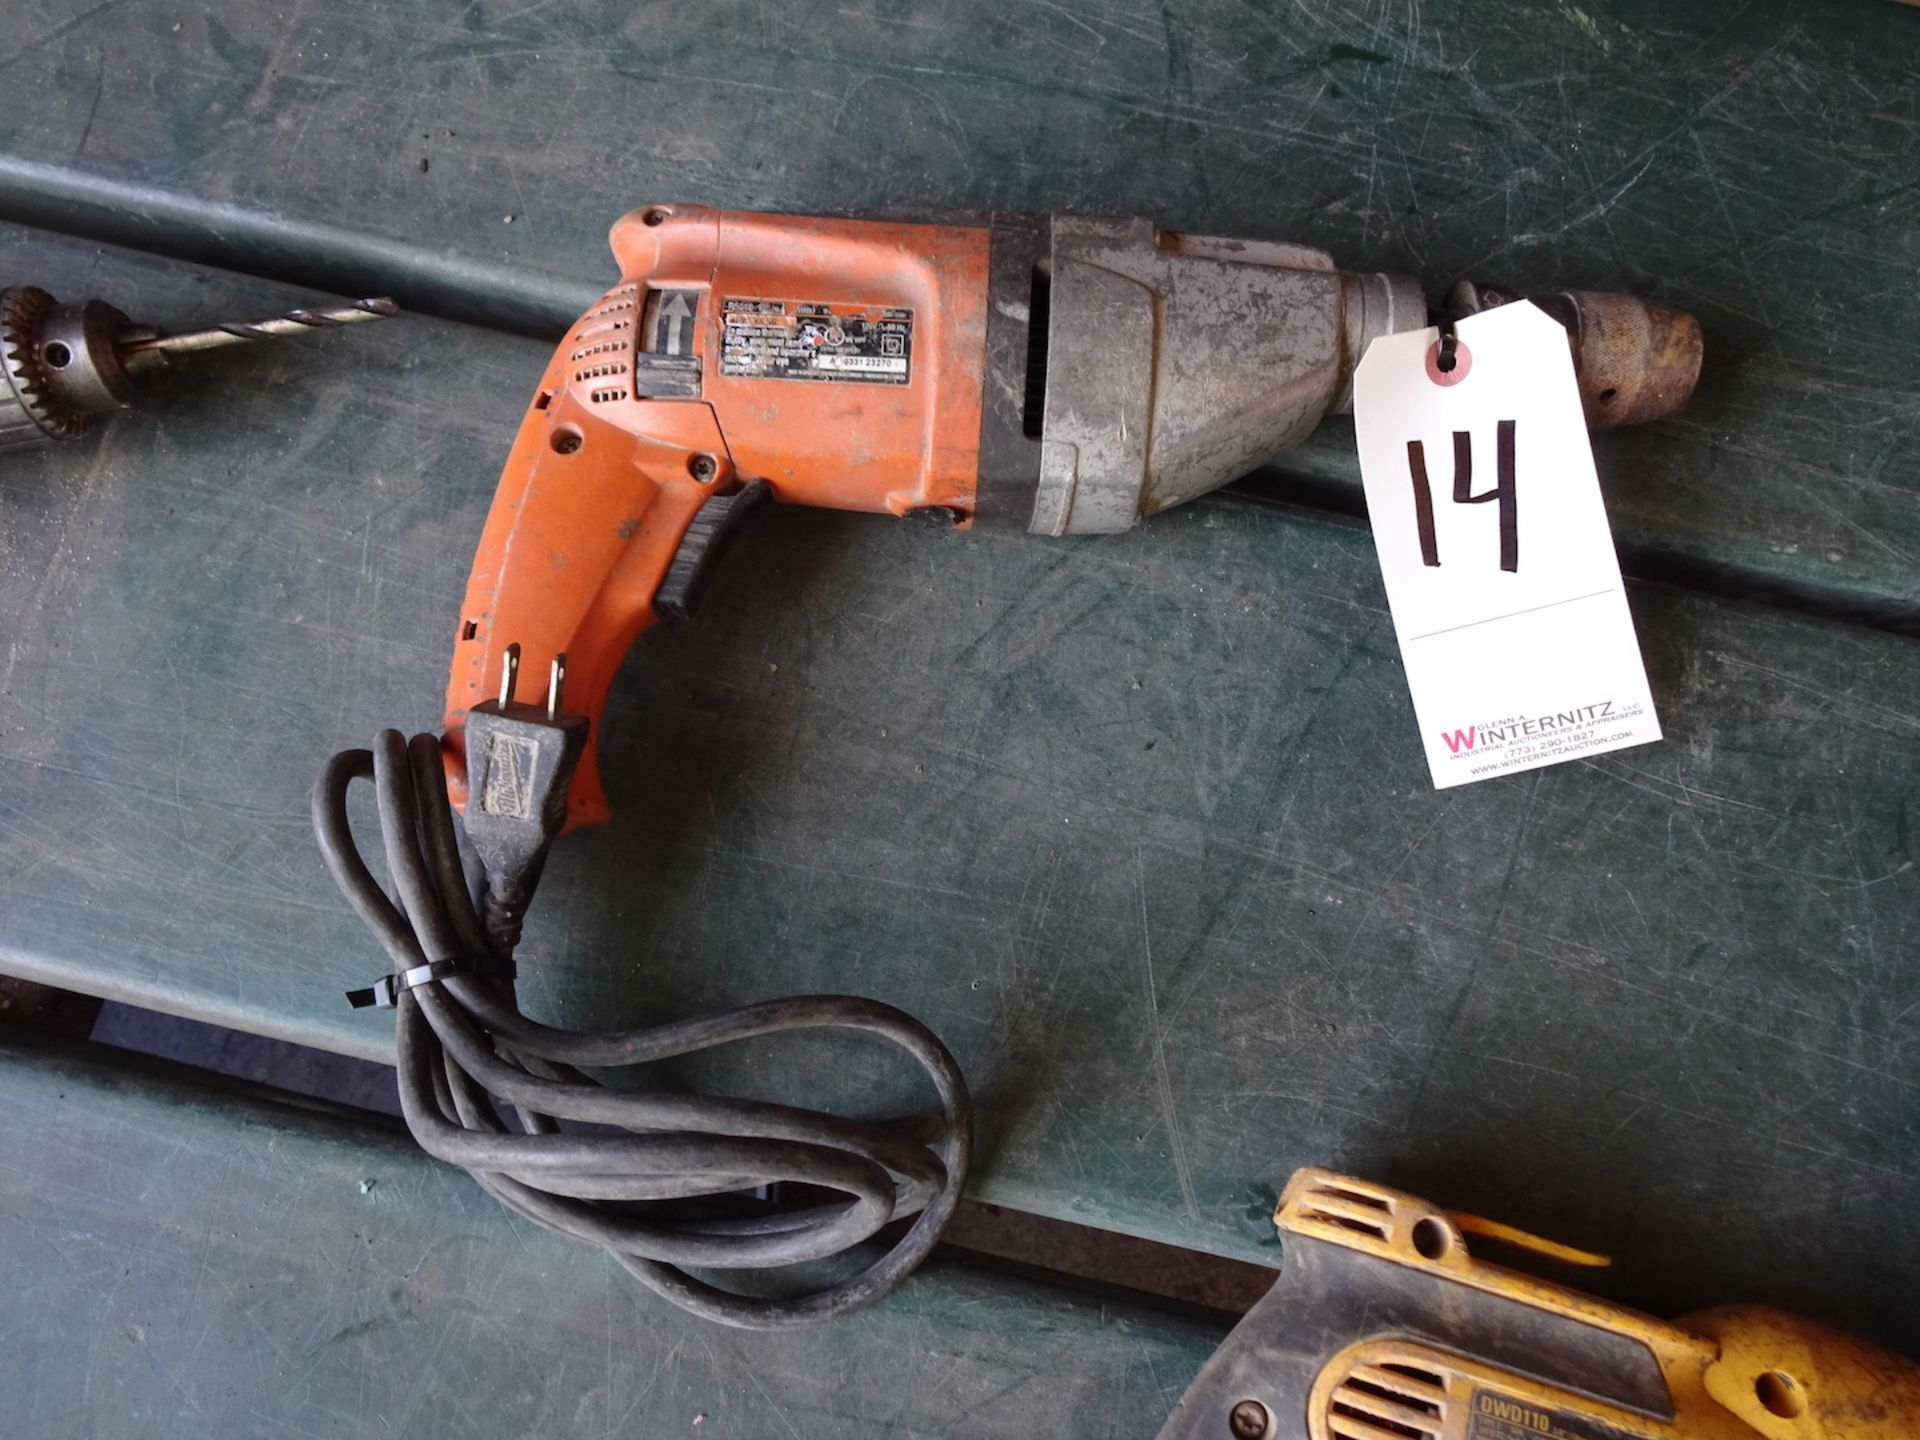 Lot 14 - RIDGID ELECTRIC DRILL